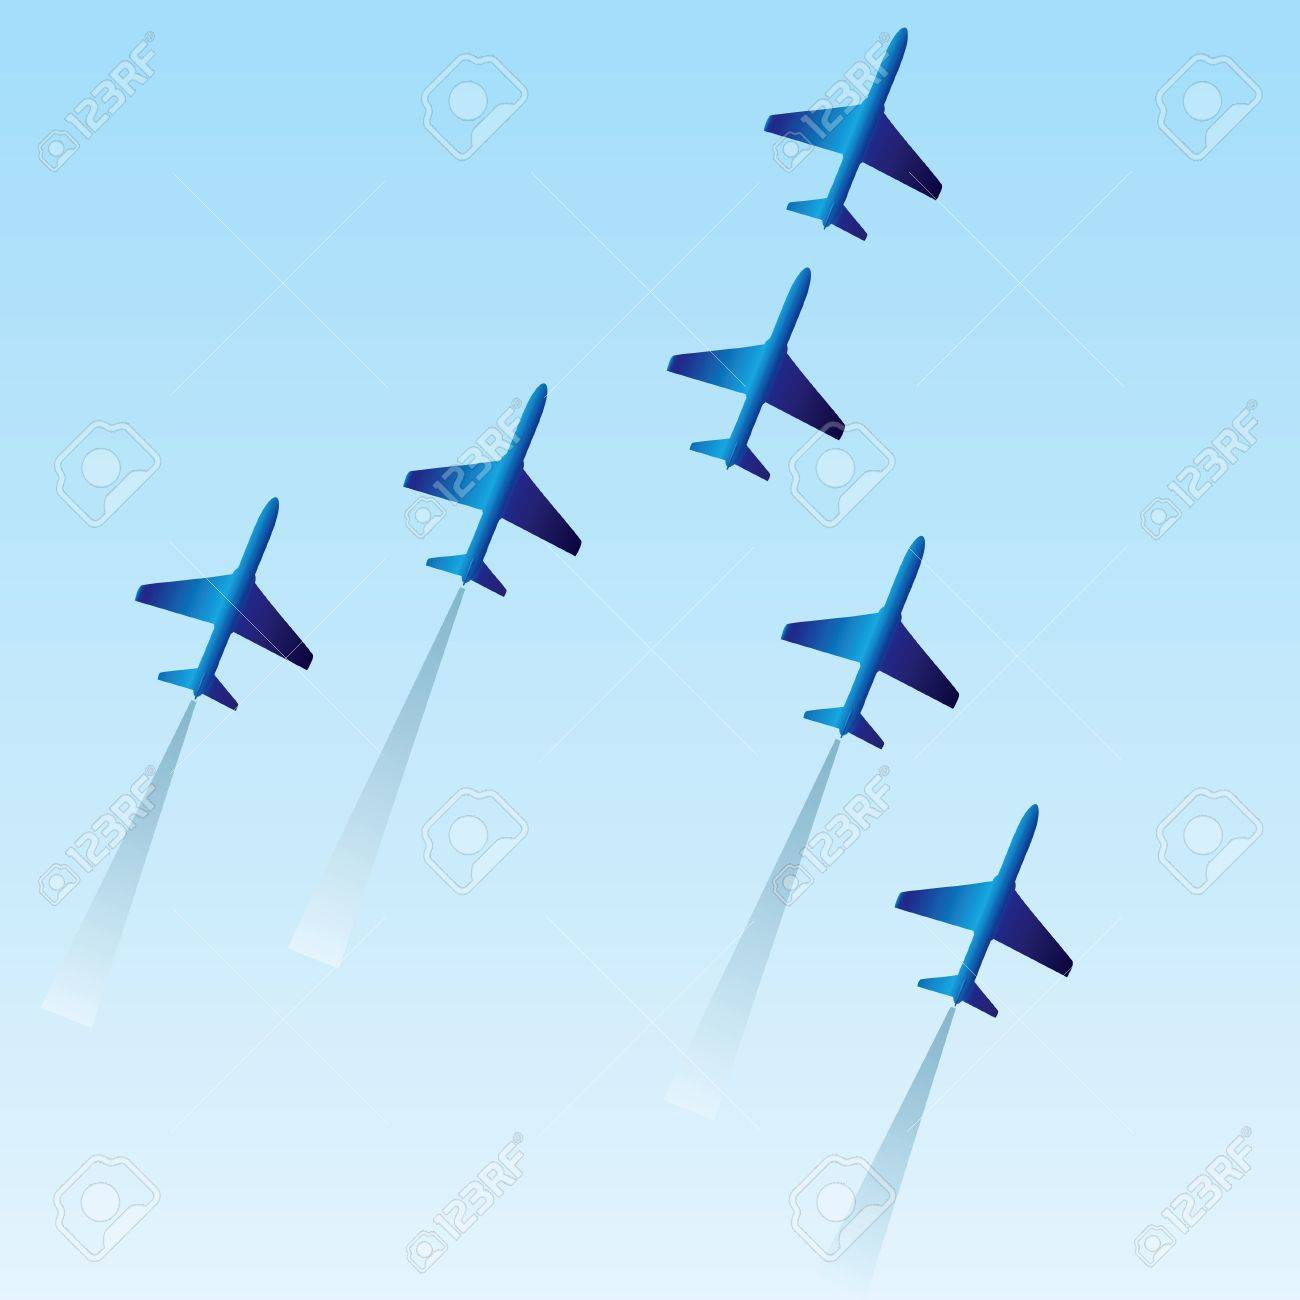 The squadron of six planes Stock Vector - 13903553